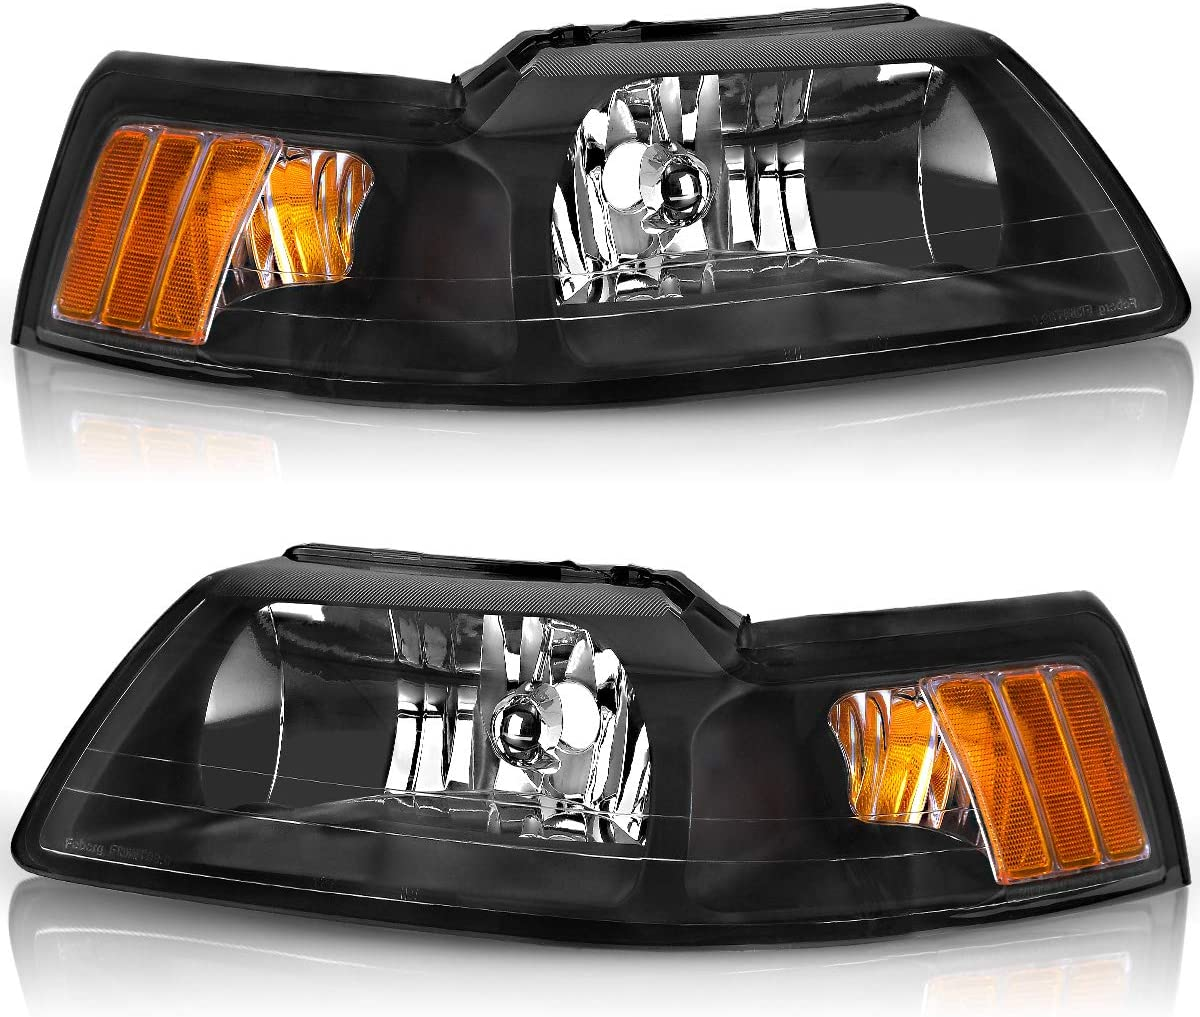 amazon com compatible with 1999 2004 ford mustang headlights oedro black housing with amber reflector headlight lamp set left right 2 yr warranty automotive compatible with 1999 2004 ford mustang headlights oedro black housing with amber reflector headlight lamp set left right 2 yr warranty